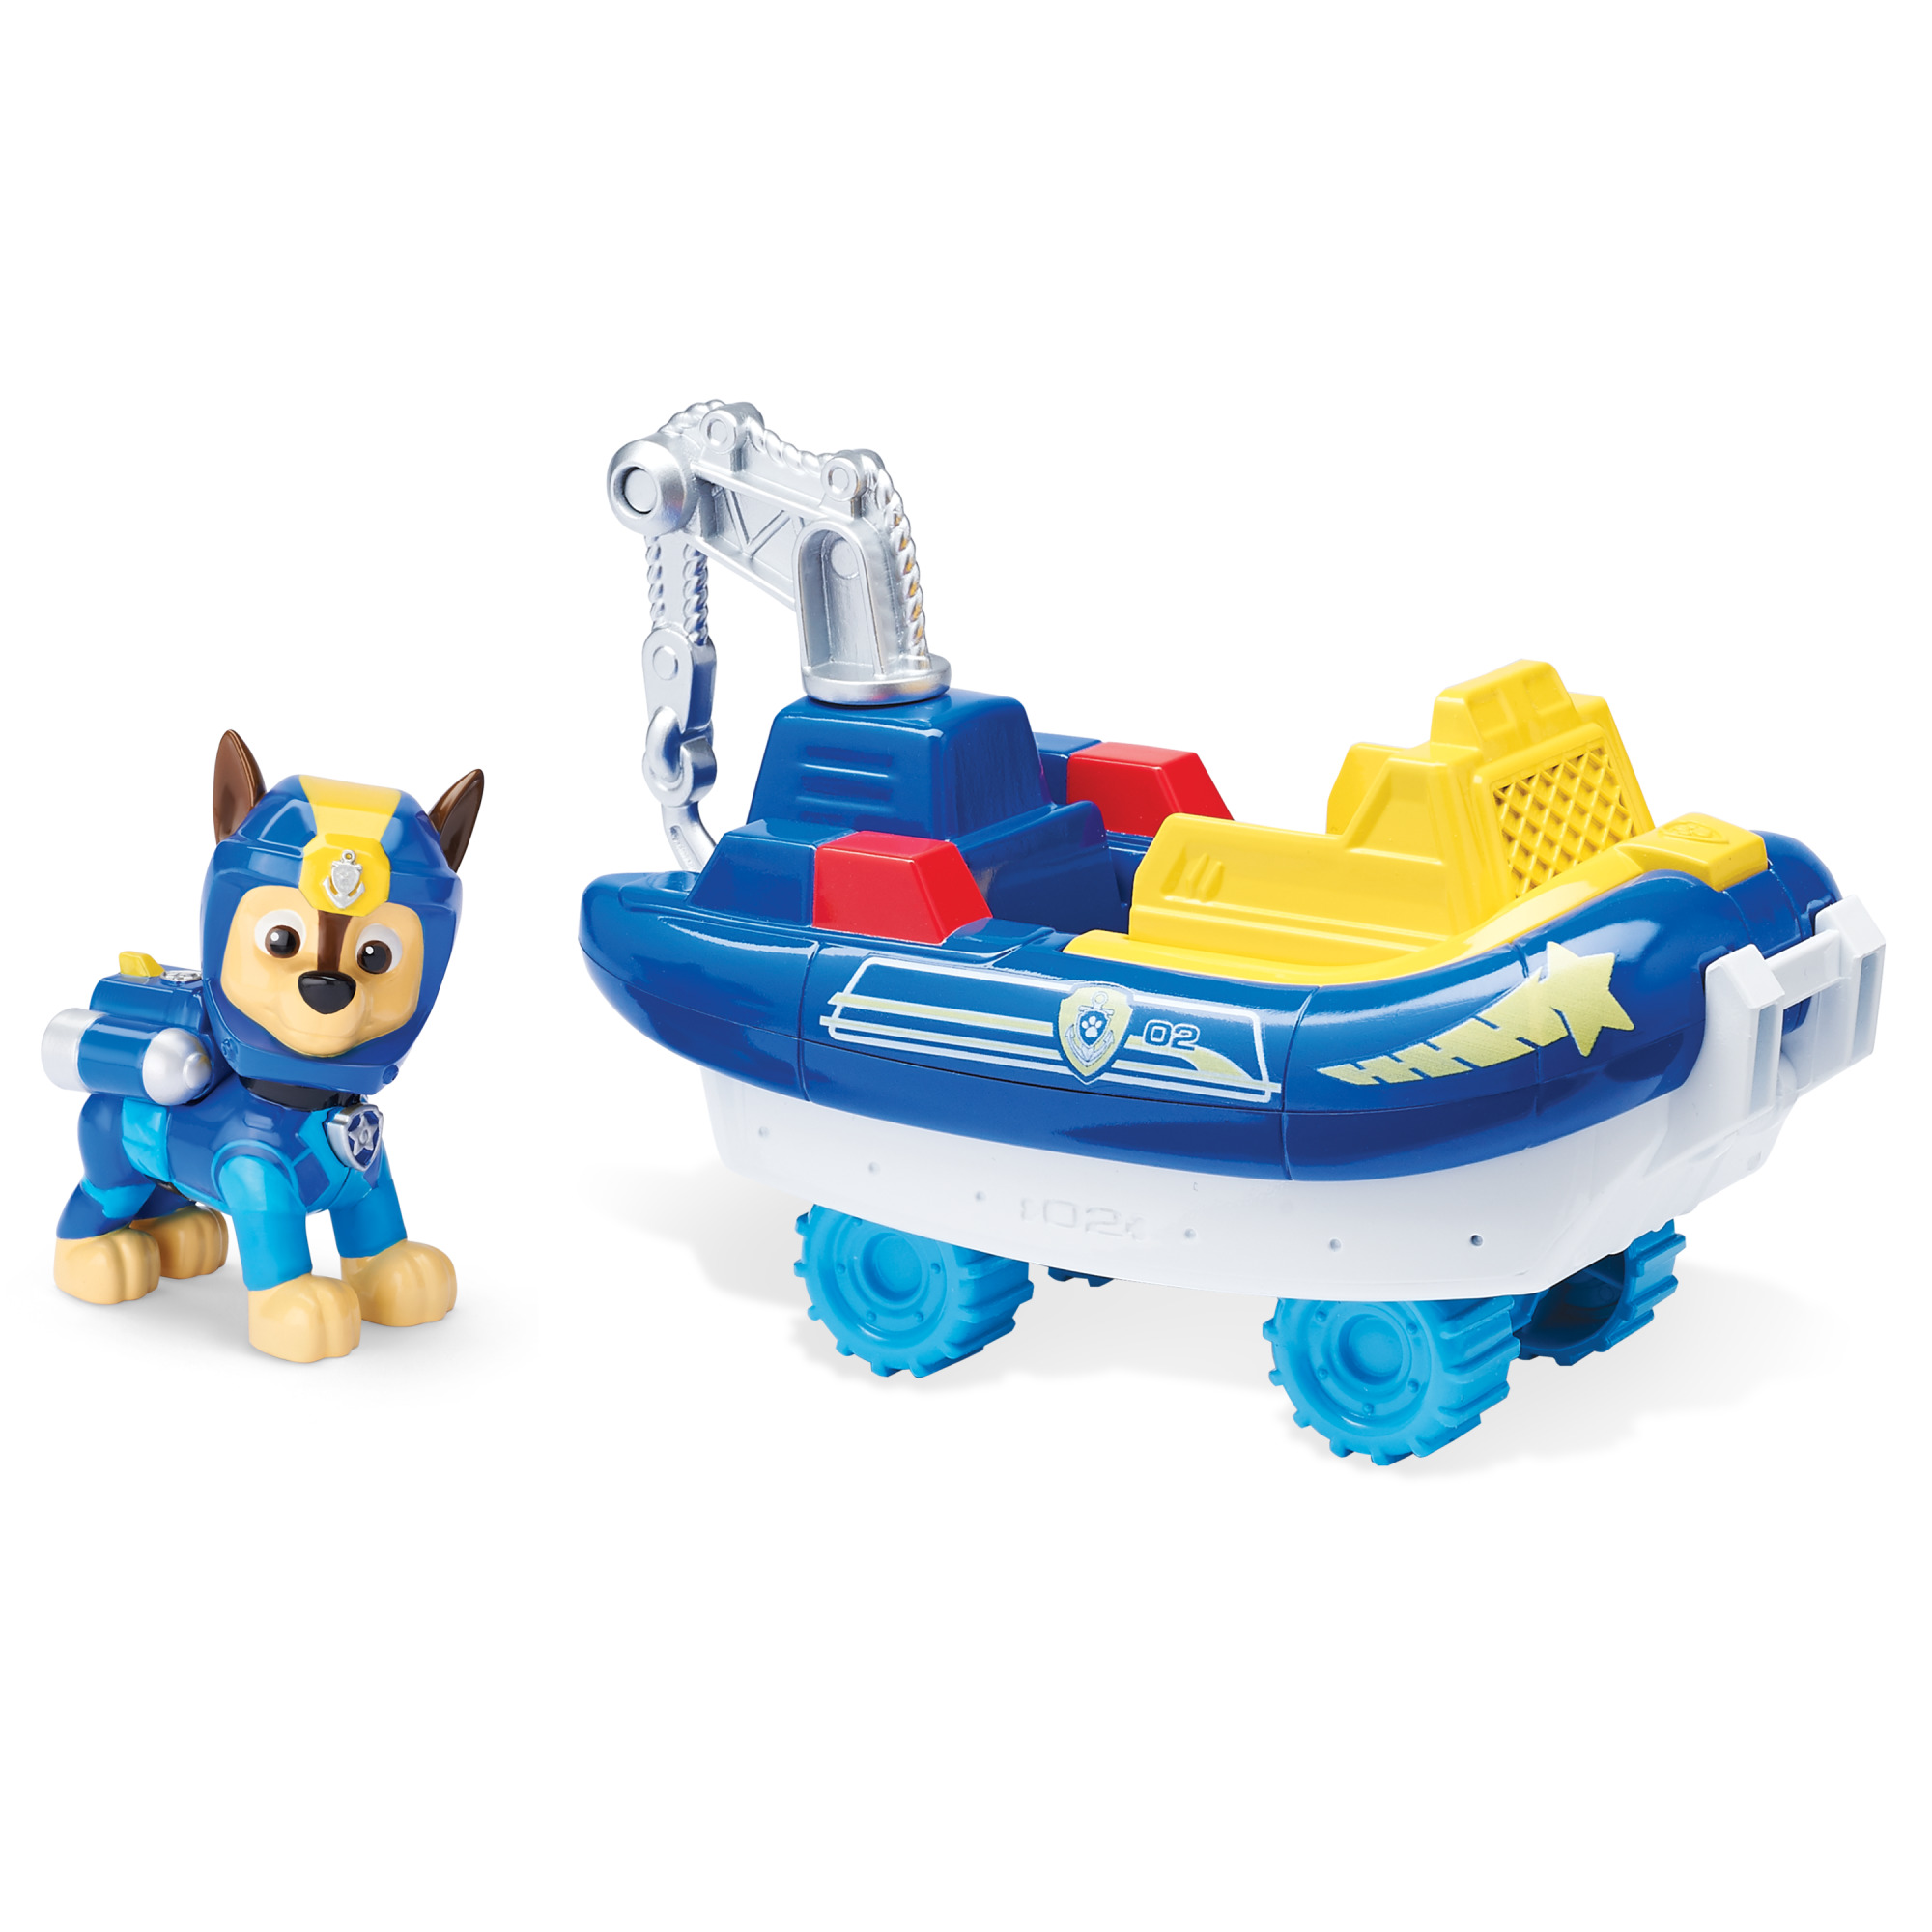 SM120167020000Paw Patrol Vehicle Sea Patrol Asst (2)